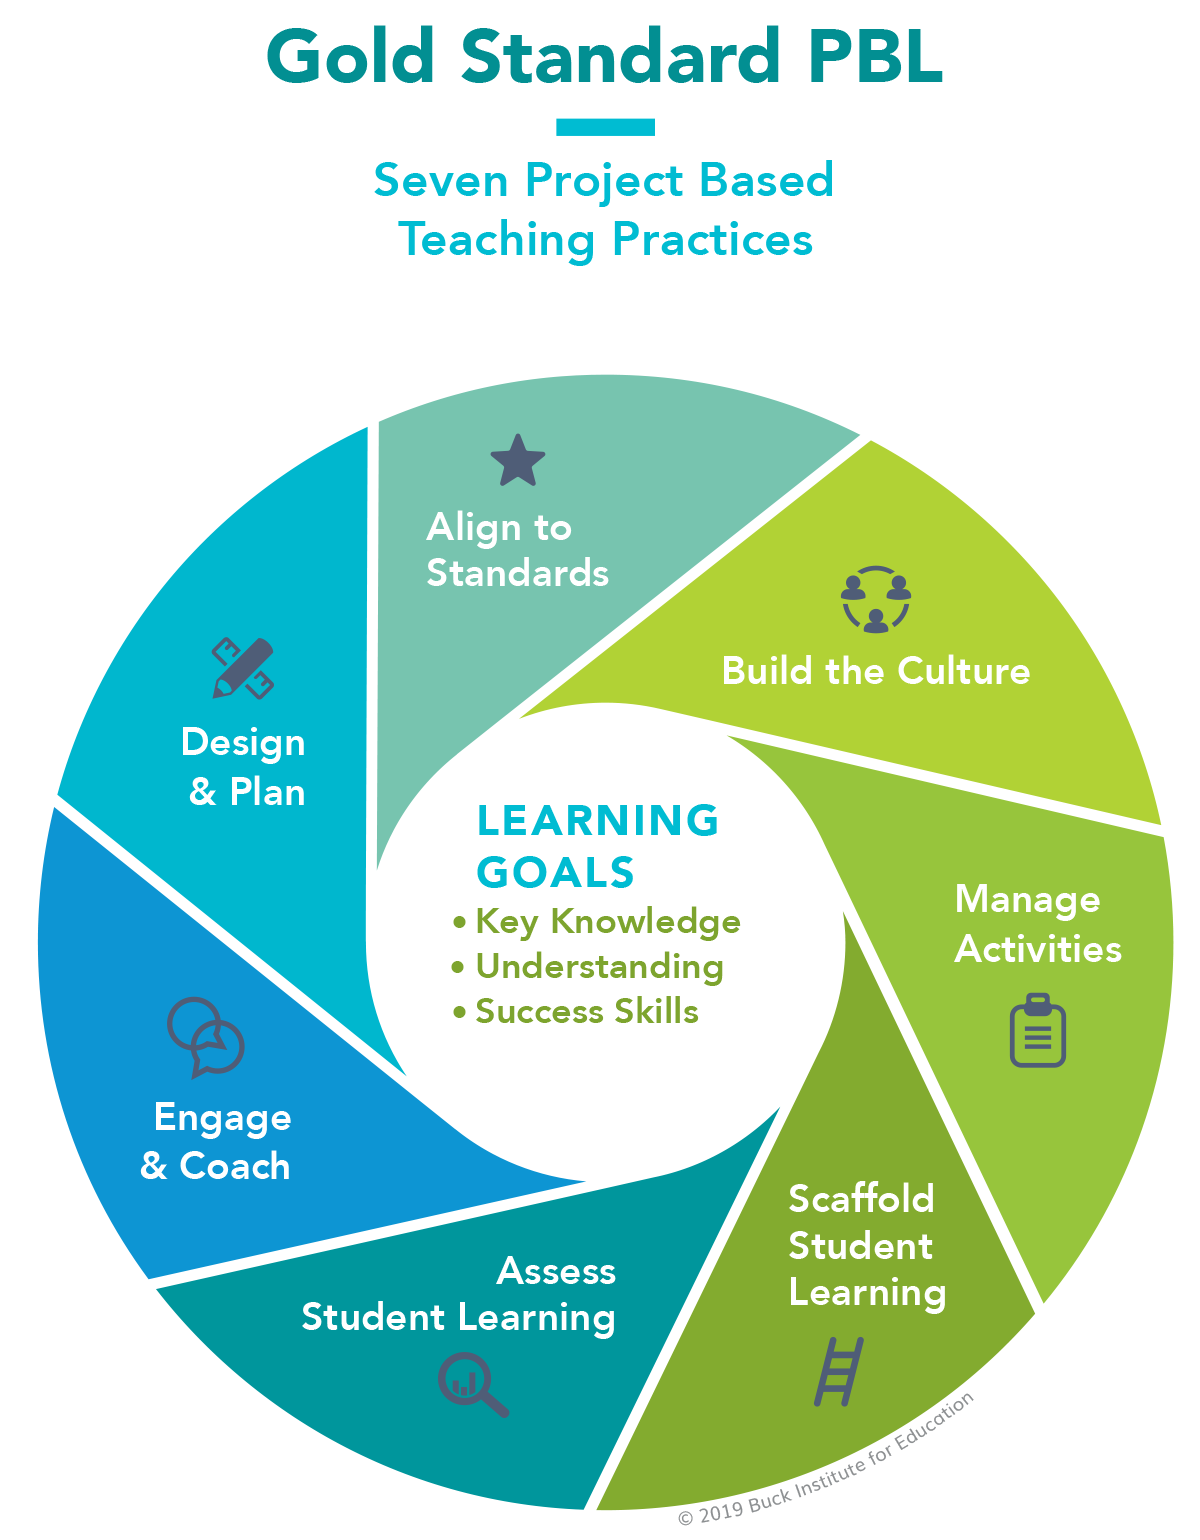 https://www.pblworks.org/what-is-pbl/gold-standard-teaching-practices